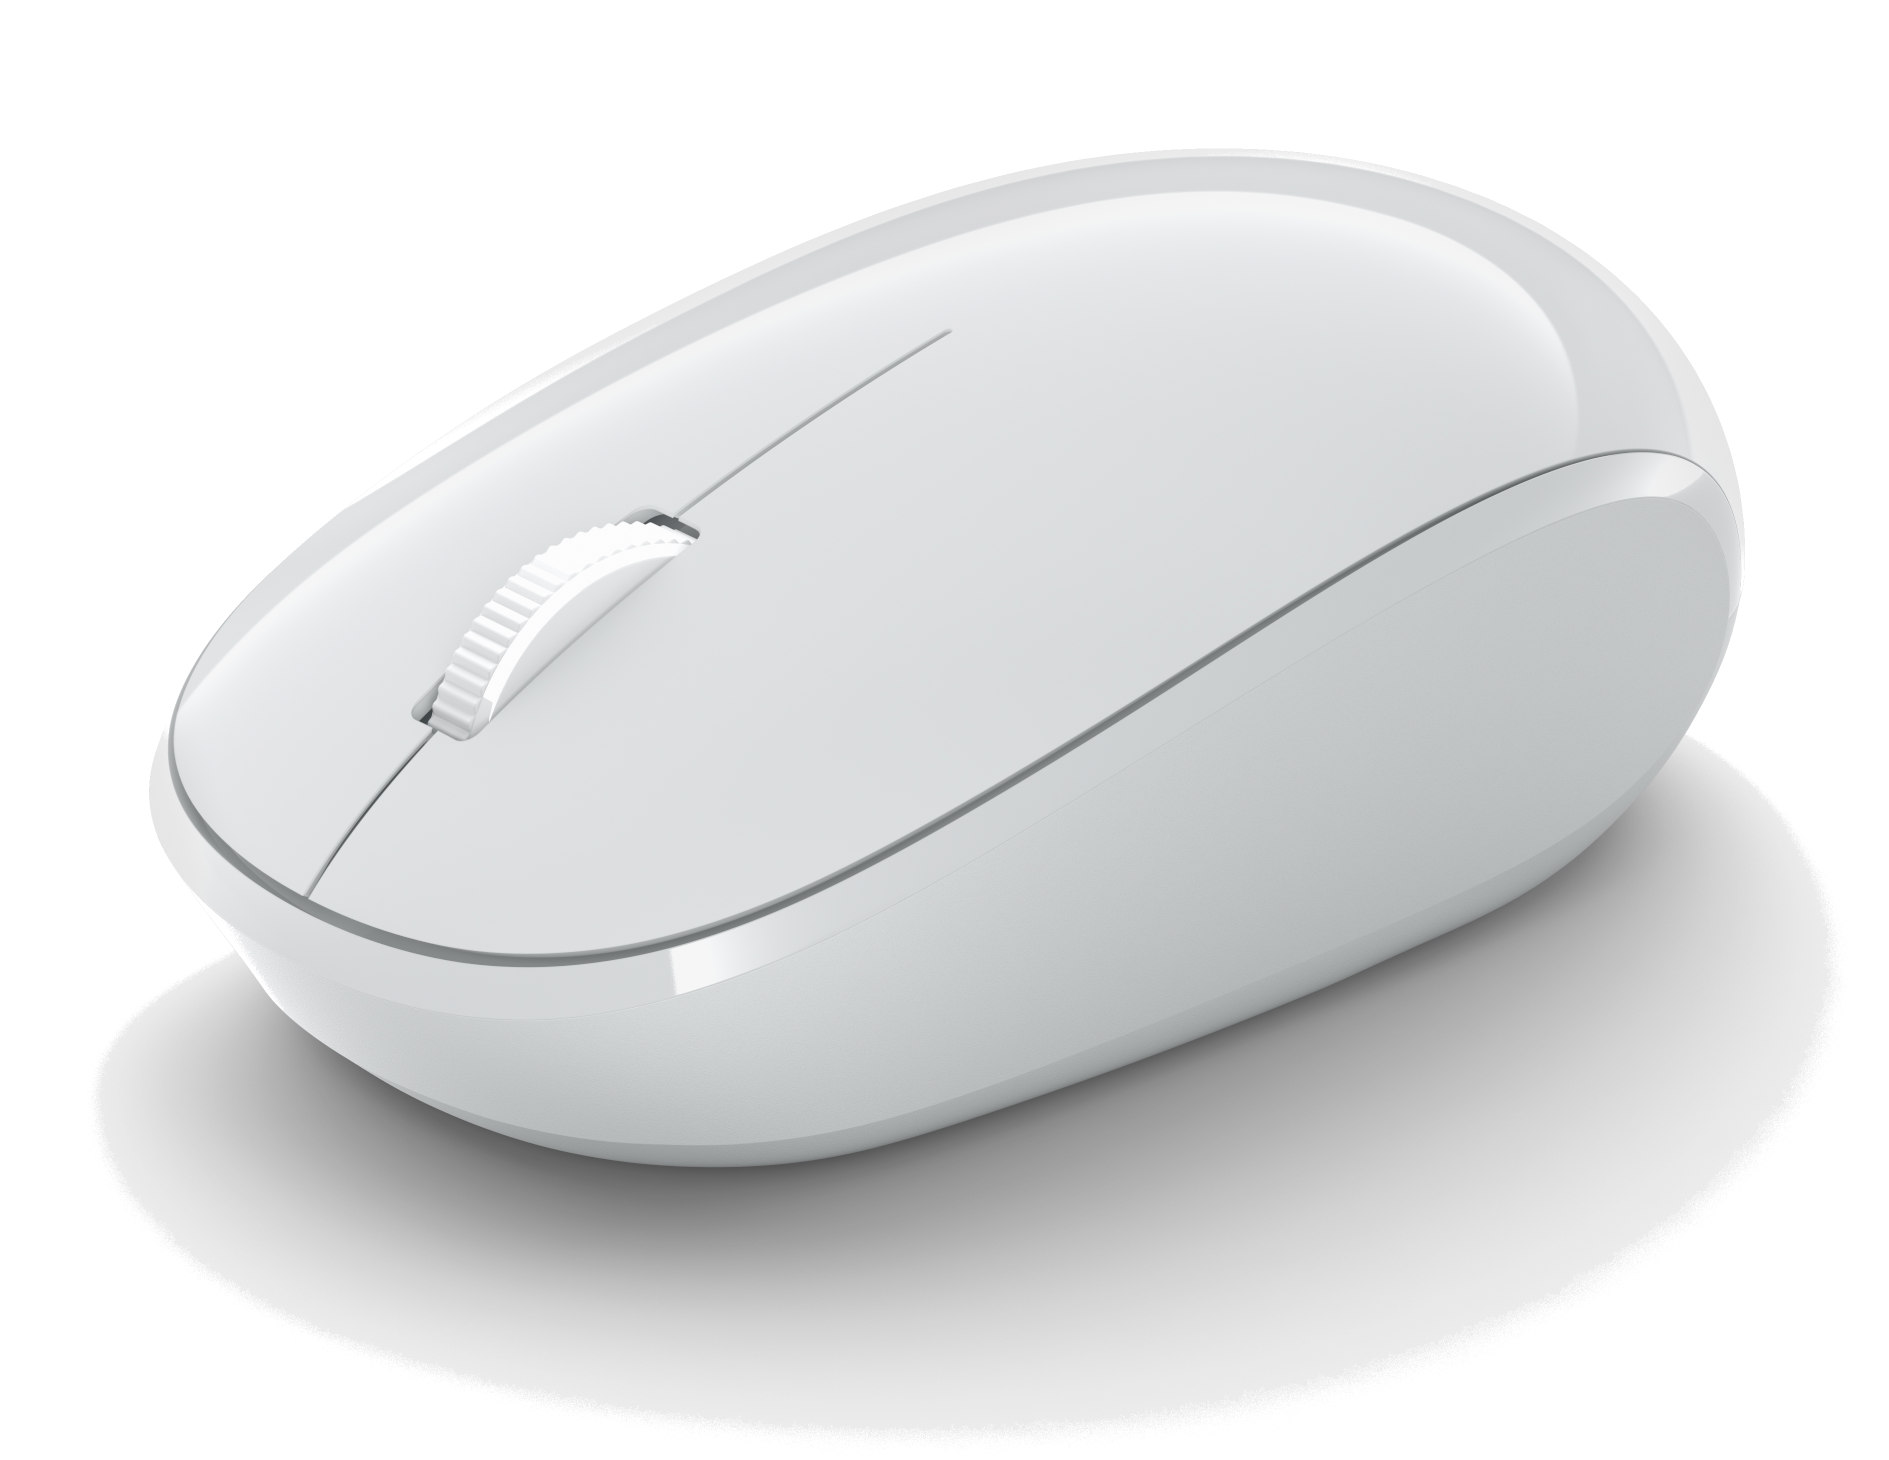 Microsoft Bluetooth Mouse, Glacier